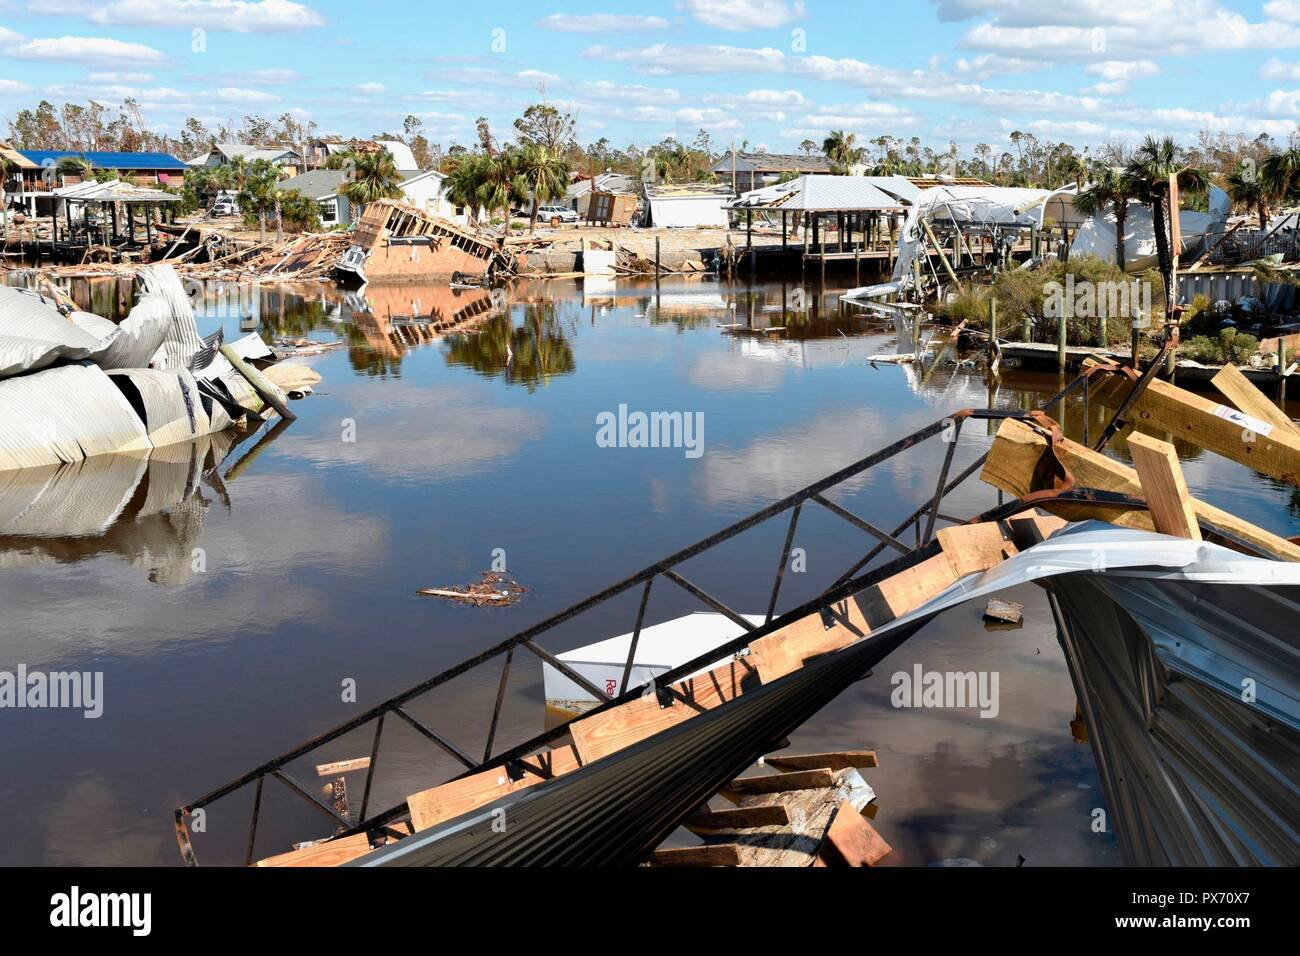 Catastrophic damage to a docks, boats and the marina in the aftermath of Hurricane Michael as the storm left a swath of destruction across the Panhandle region of Florida area October 14, 2018 in Mexico Beach, Florida. The Category 4 monster storm left behind catastrophic damage along northwestern Florida. - Stock Image